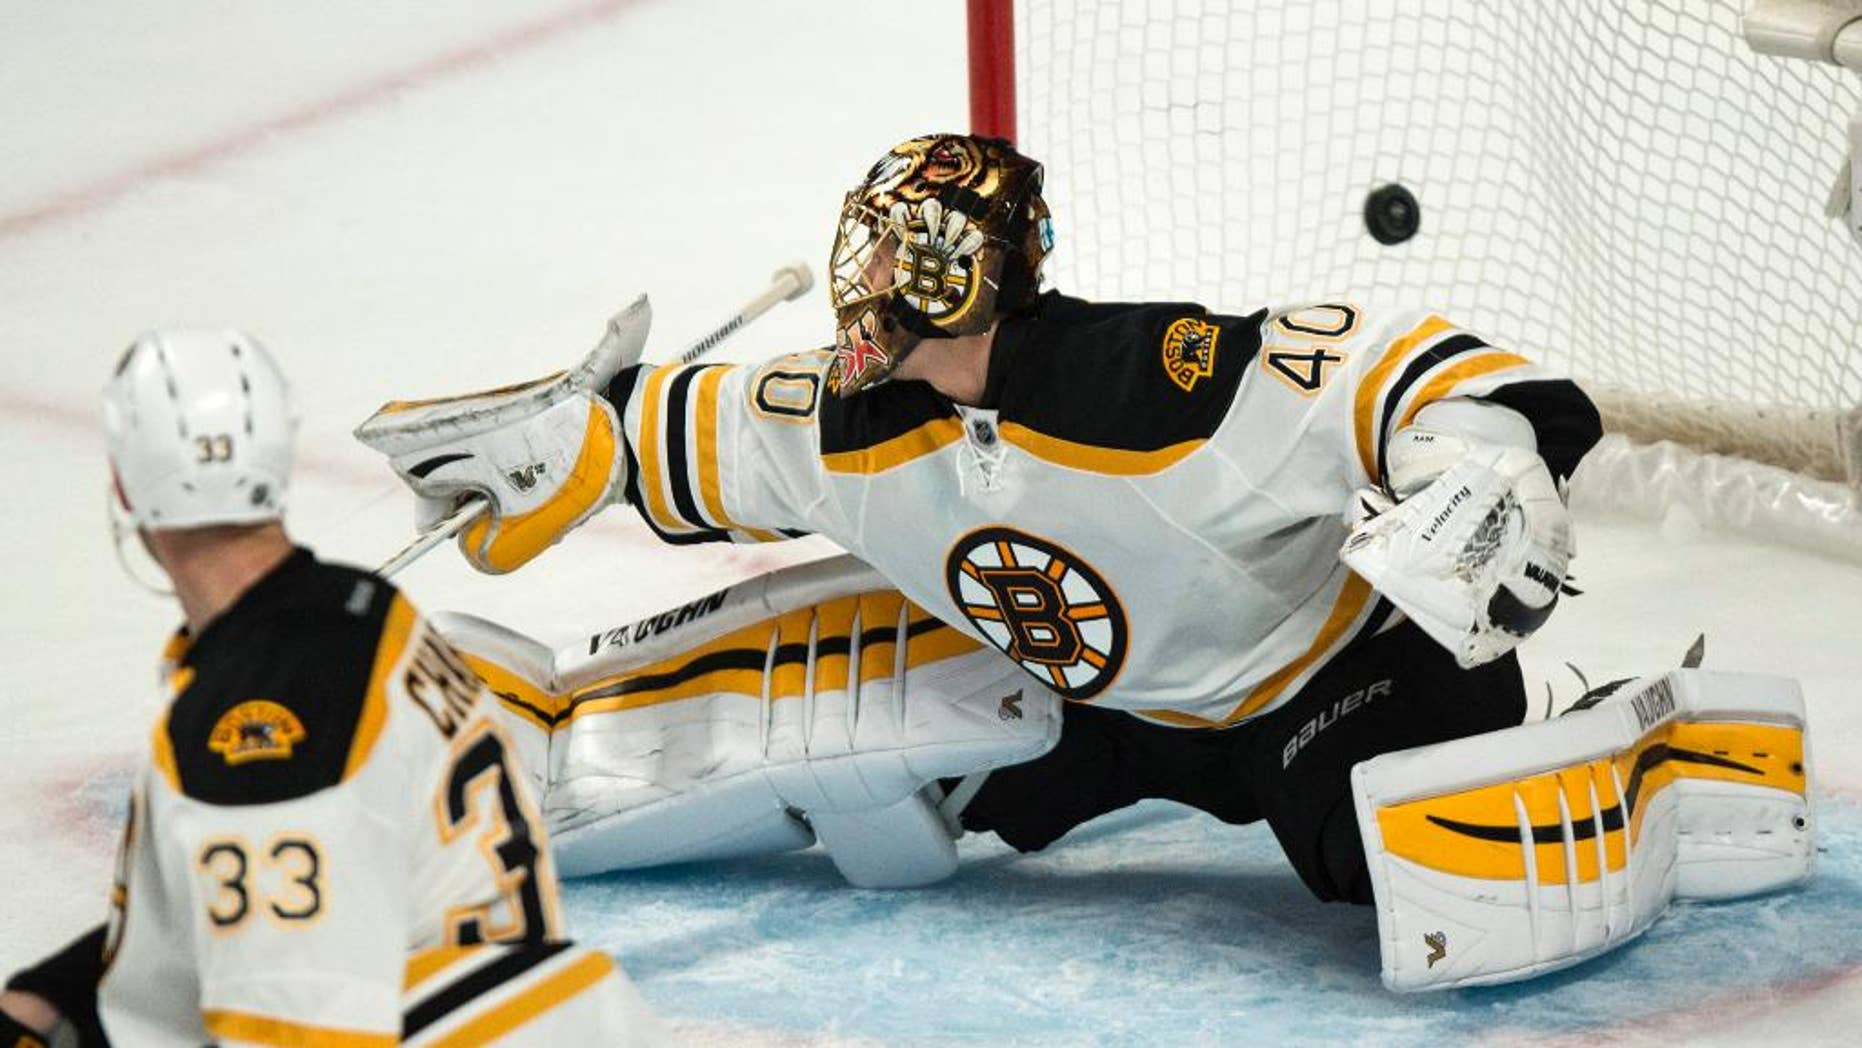 The puck flies over Boston Bruins goalie Tuukka Rask on a goal by Montreal Canadiens' P.A. Parenteau during second-period NHL hockey game action Thursday, Oct. 16, 2014, in Montreal. (AP Photo/The Canadian Press, Paul Chiasson)